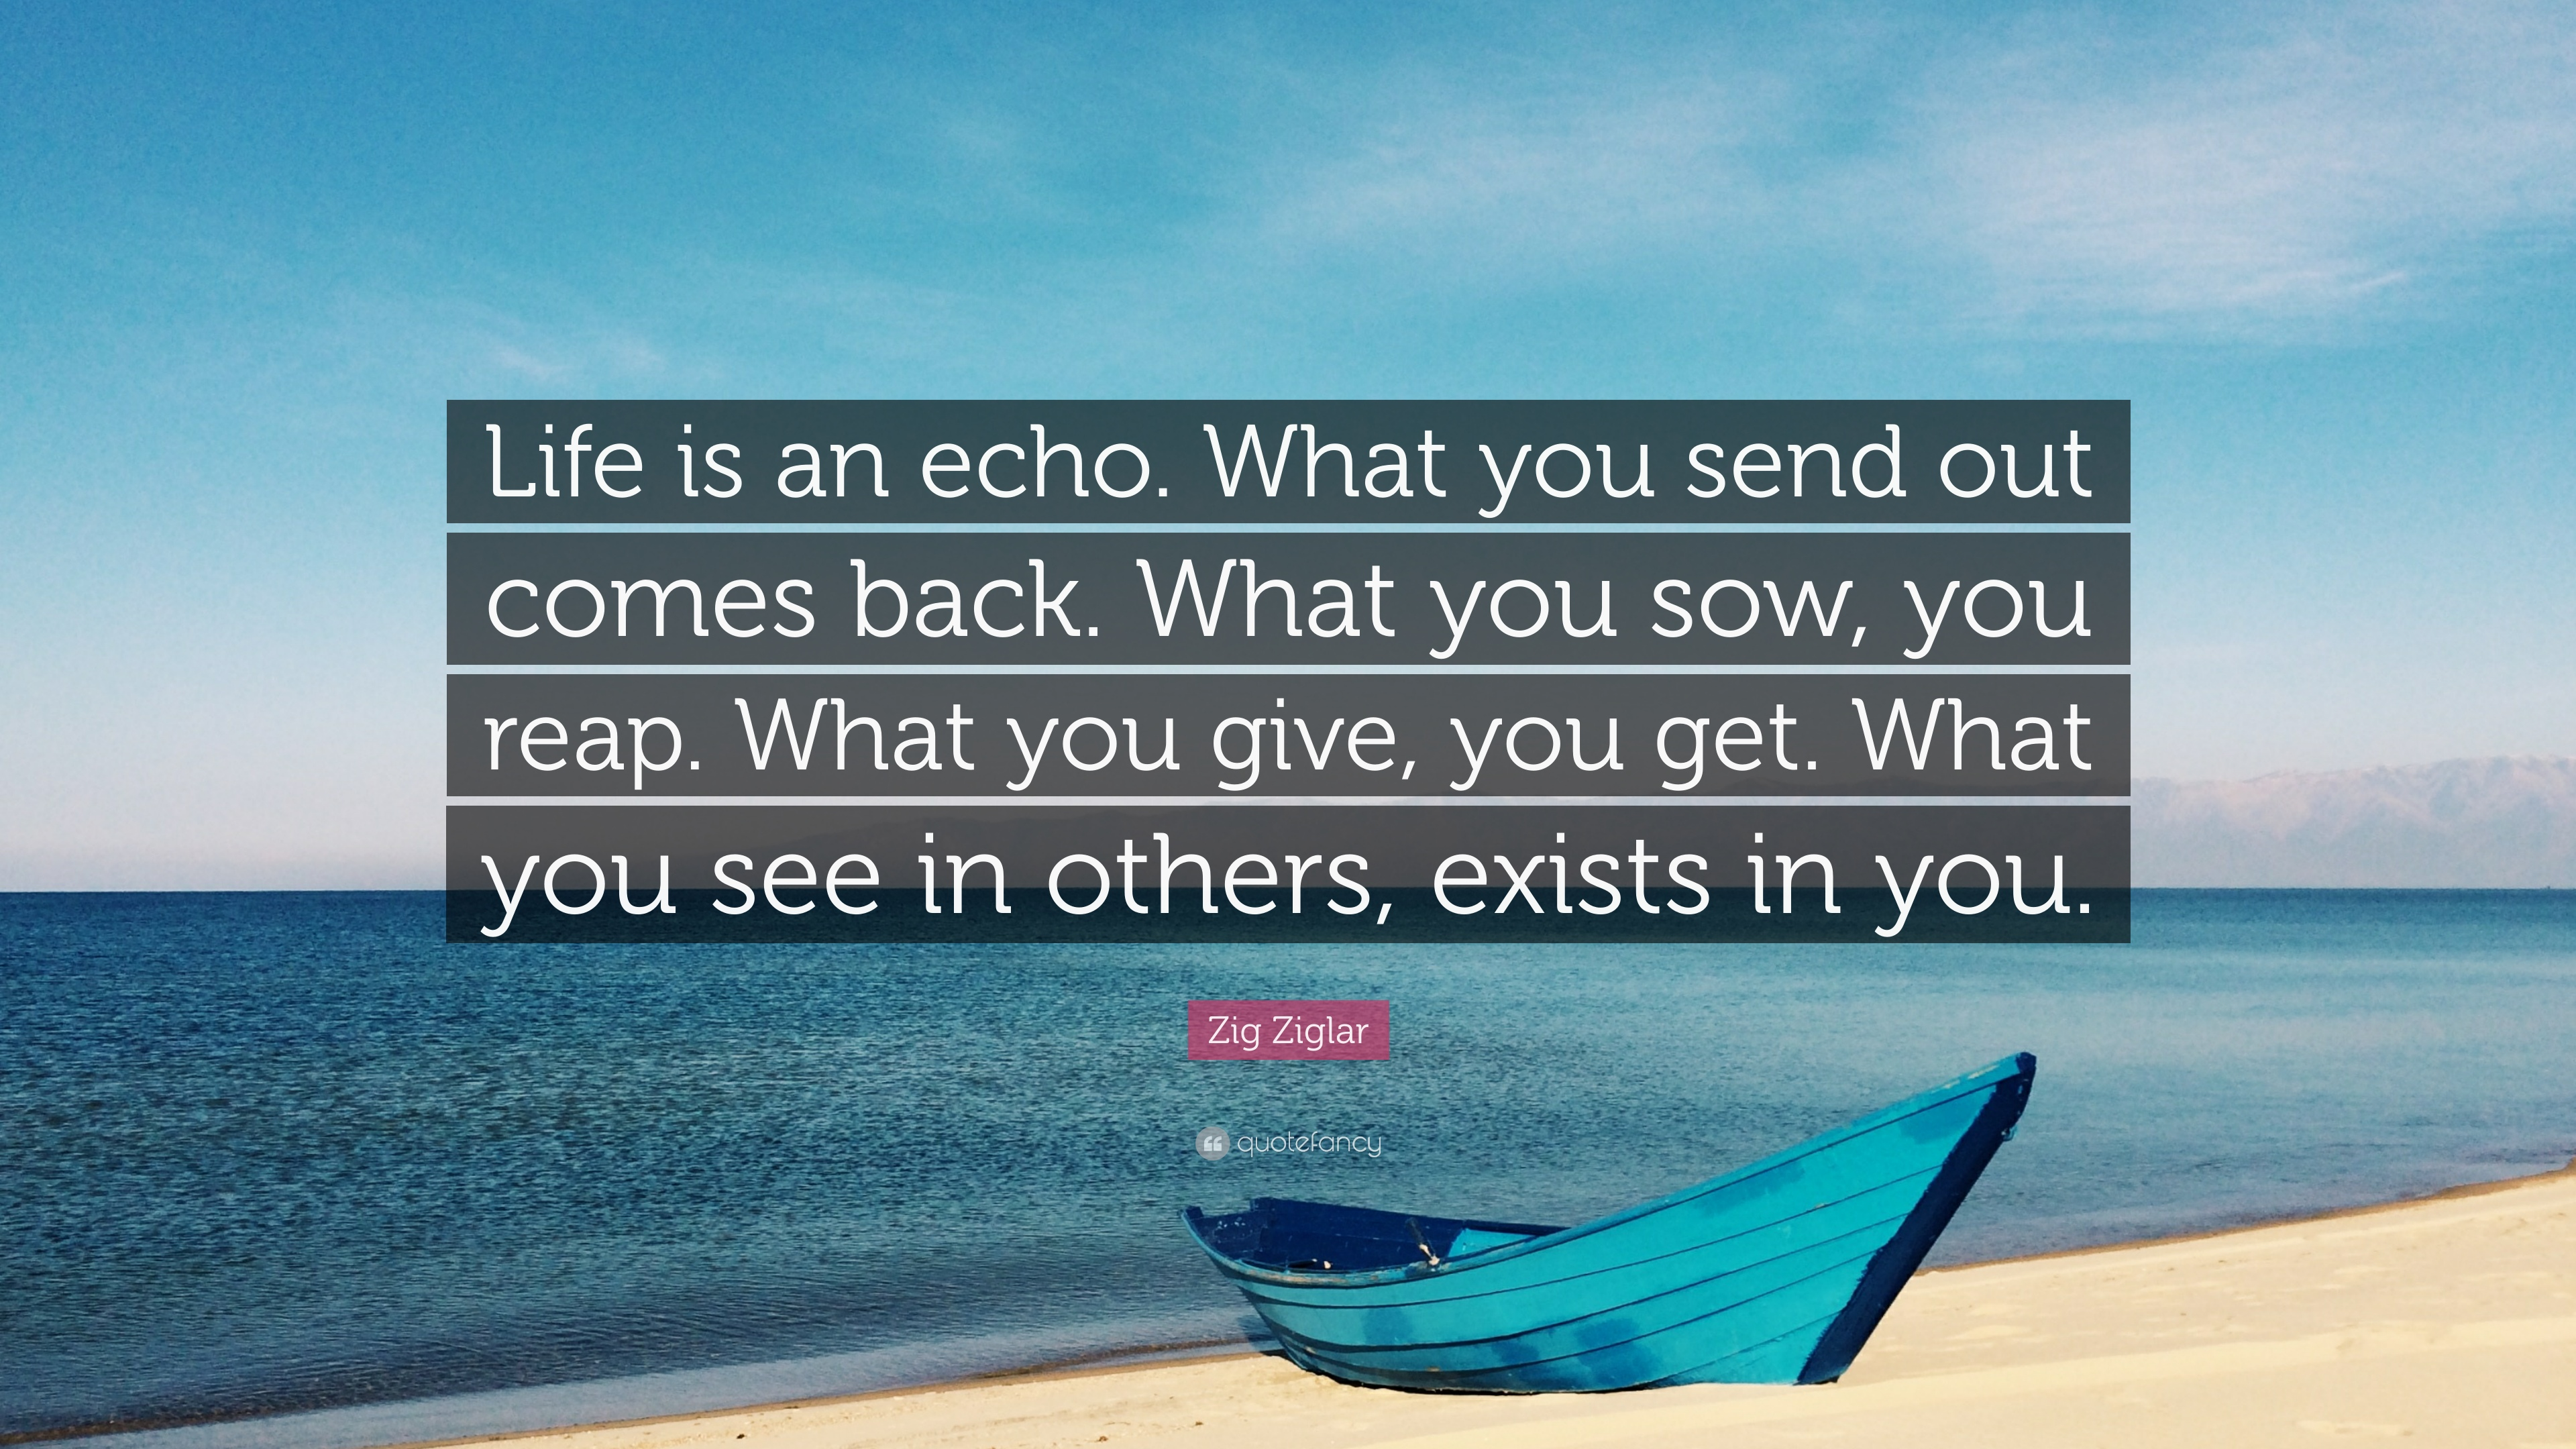 Amazing Zig Ziglar Quote: U201cLife Is An Echo. What You Send Out Comes Back